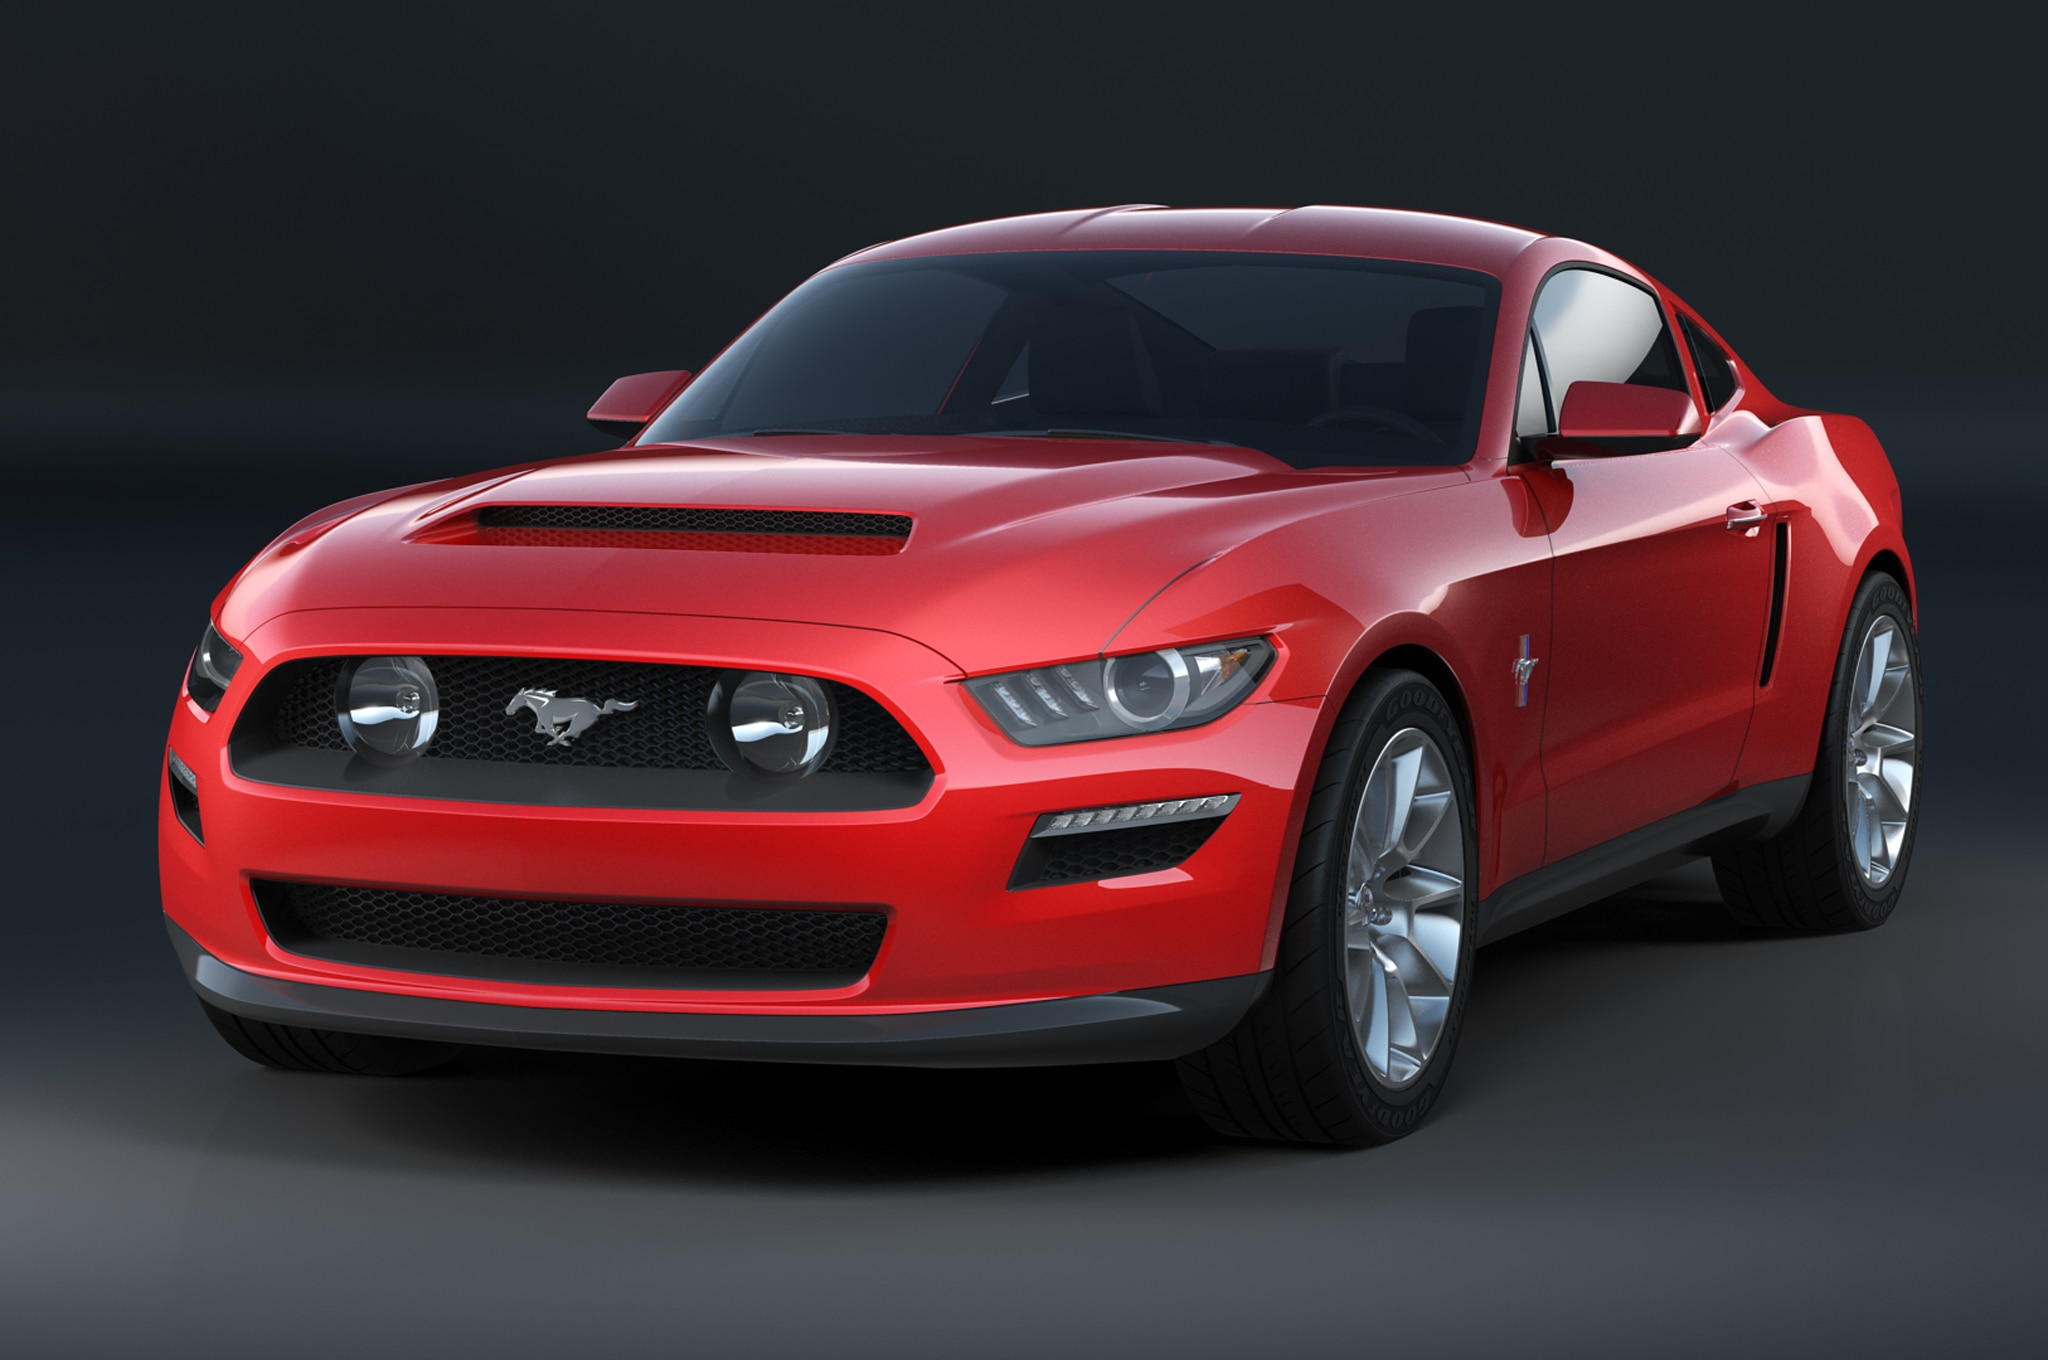 Vilner Garages Ford Mustang Gt Convertibles Reach For The Eye 2015 King Co Design Sketch